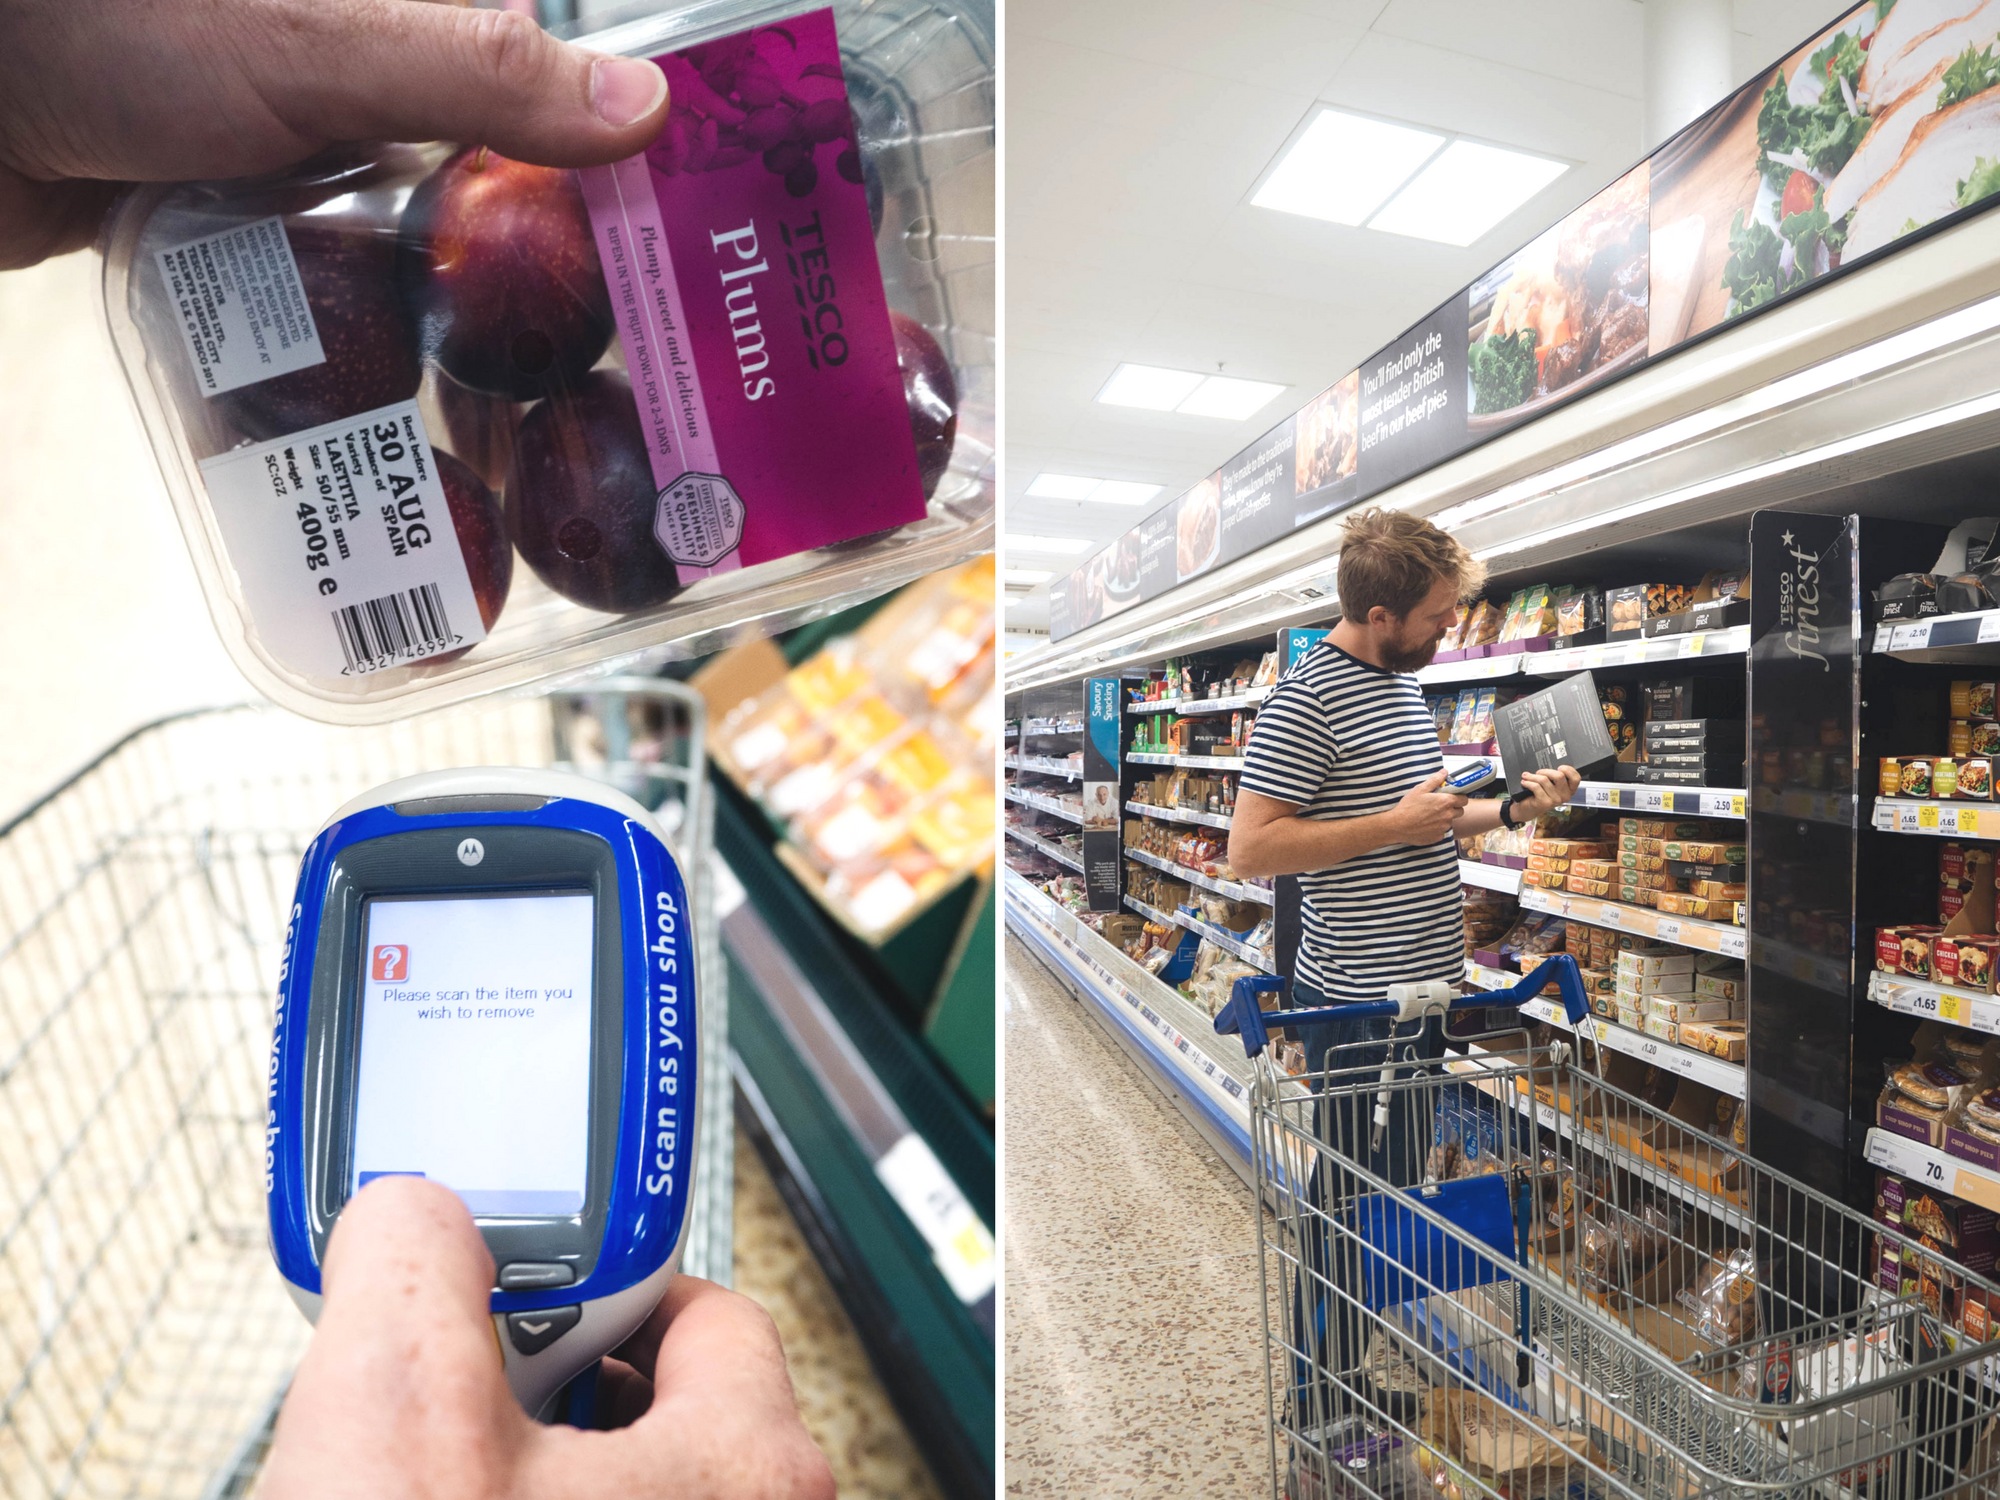 Tesco Scan As You Go campaign Littlegreenshed Blog